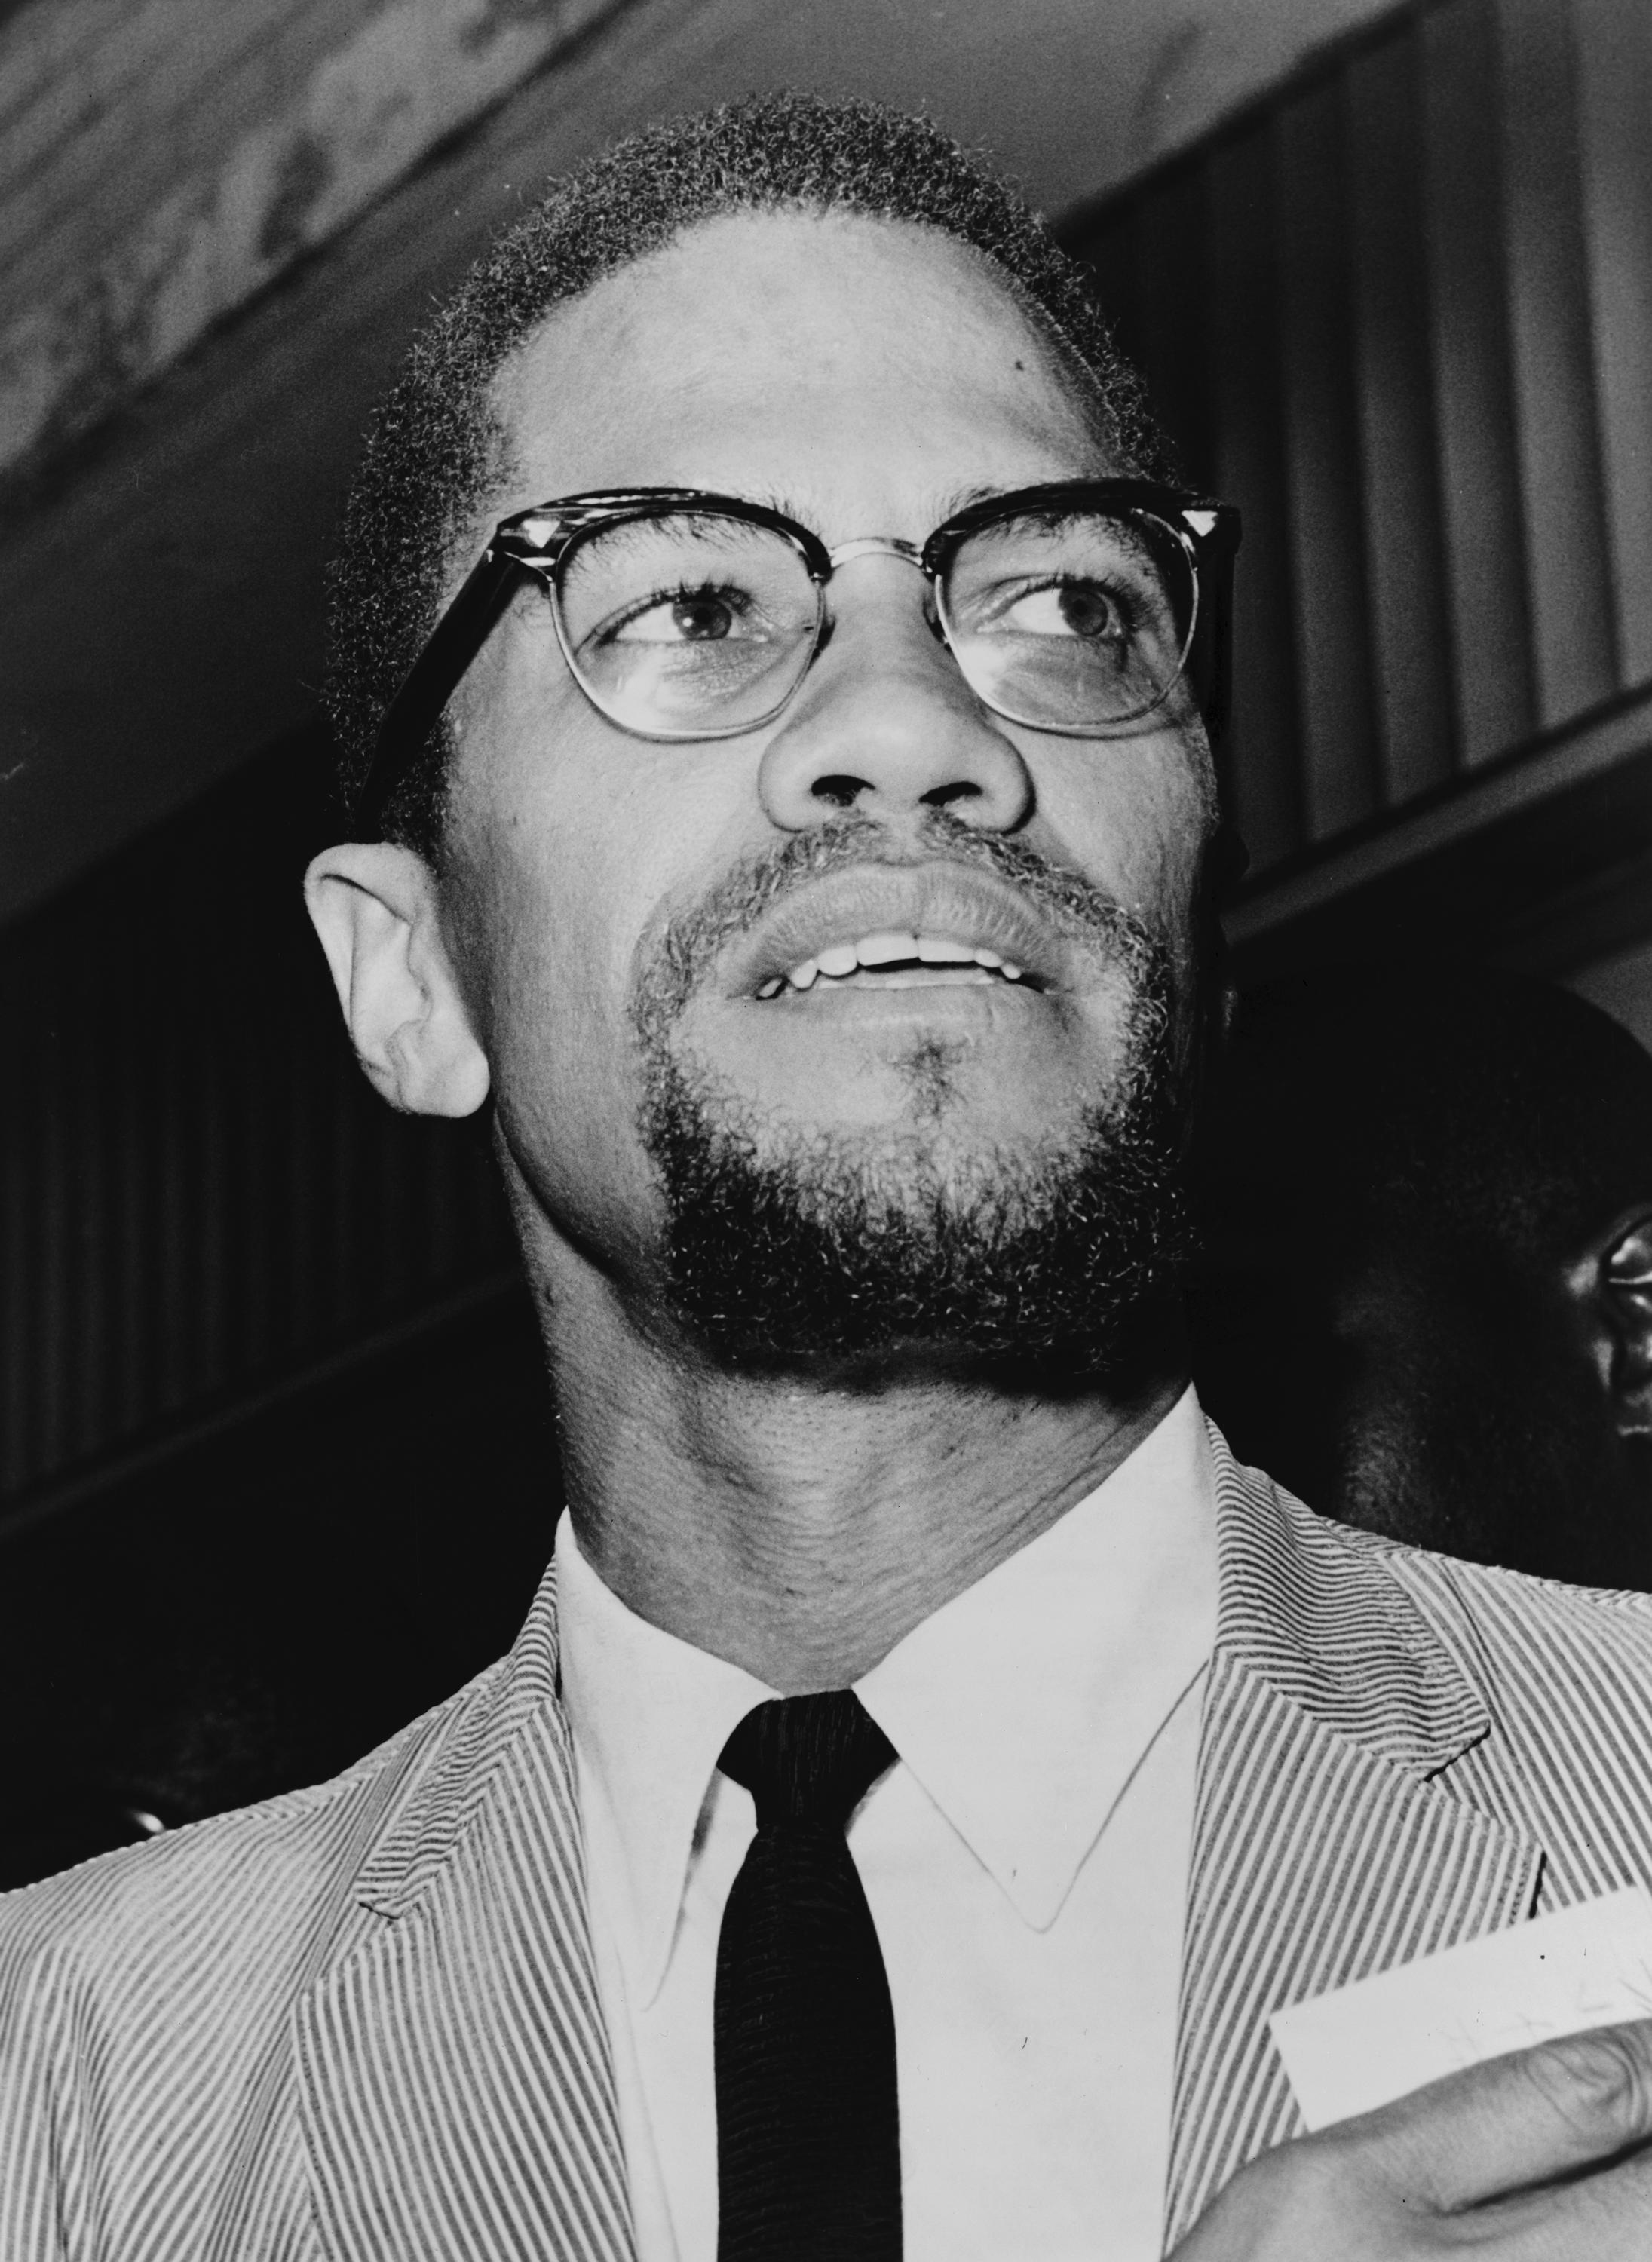 File:Malcolm X NYWTS 4.jpg - Wikipedia, the free encyclopedia